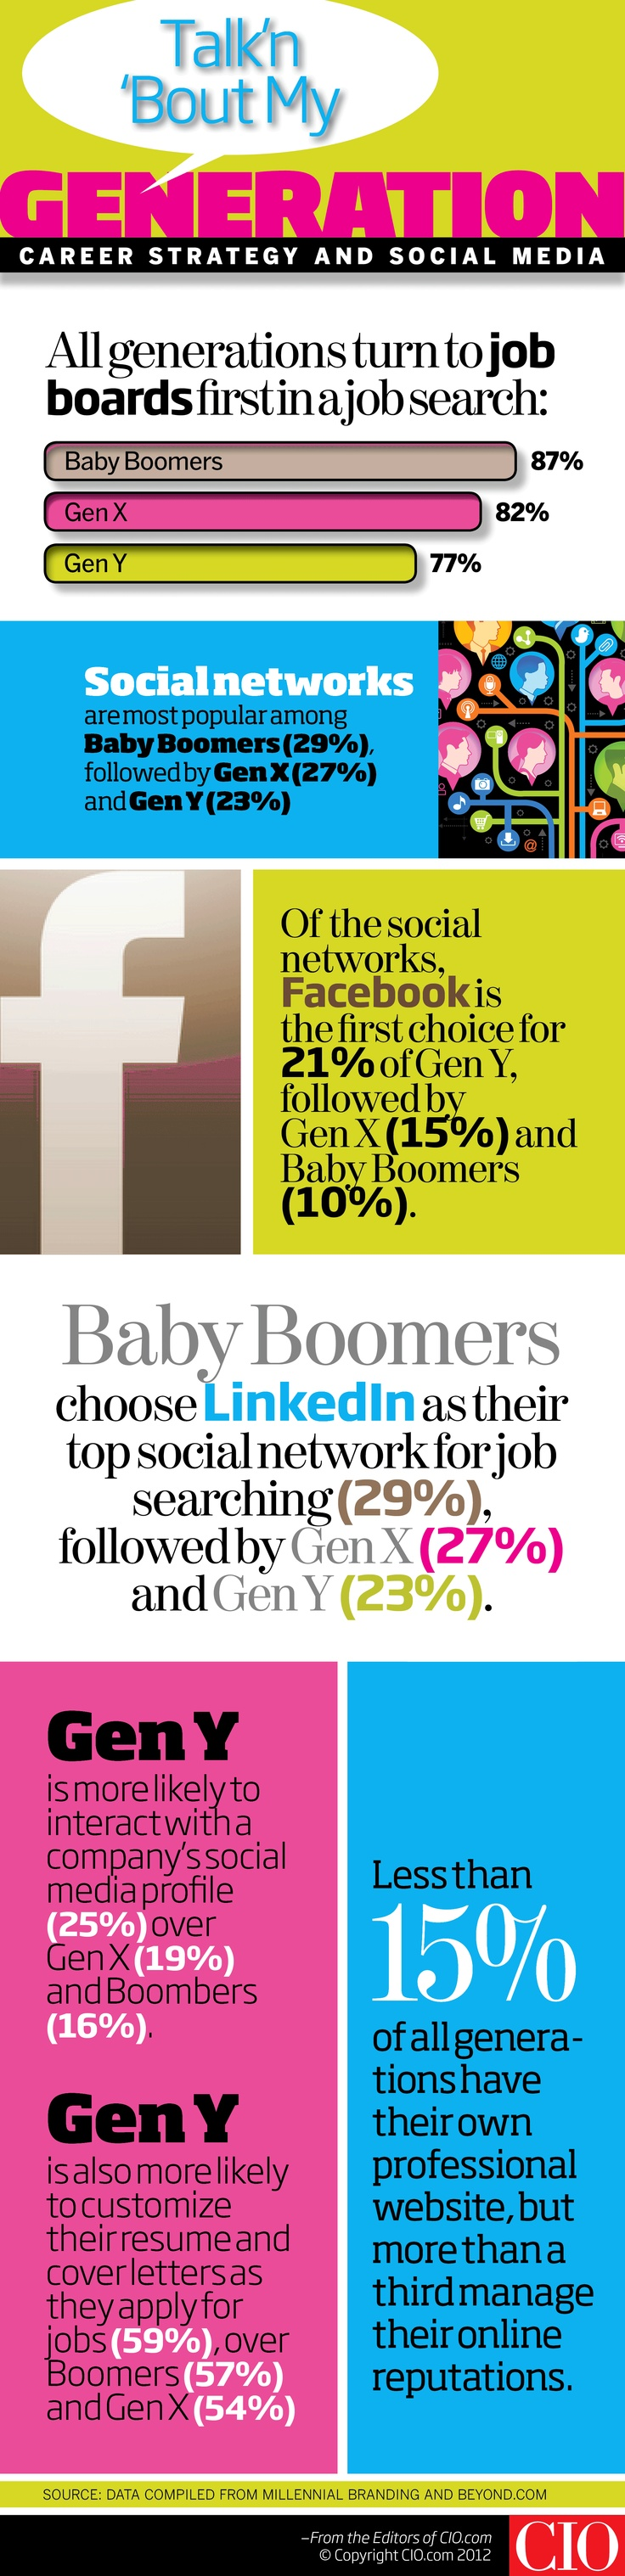 How do job seekers from Gen Y, Gen X and the Baby Boomer generation approach their #career searches? #HR #infographic